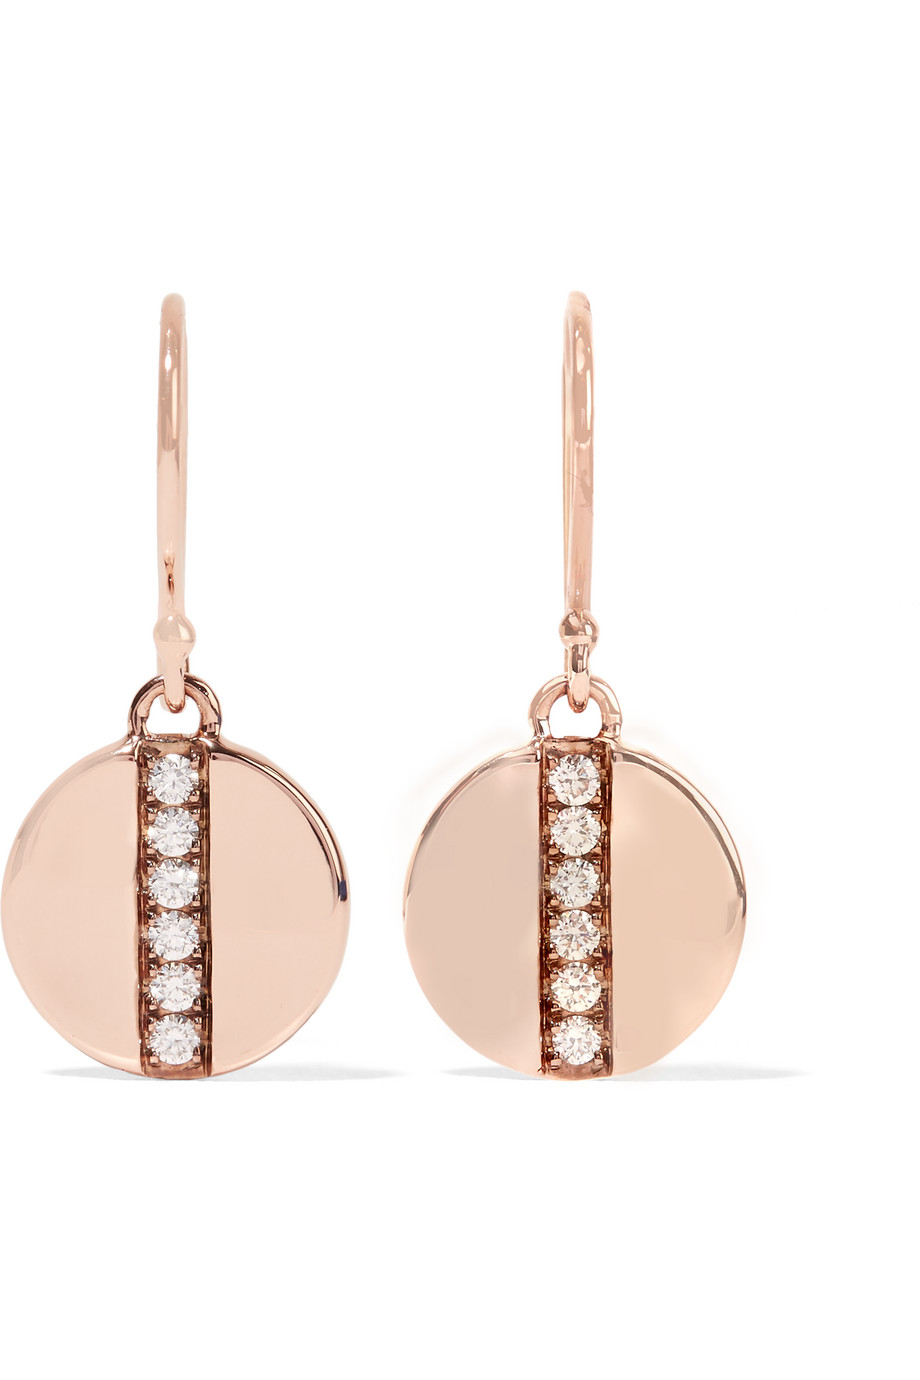 Ippolita Glamazon Stardust 18-Karat Rose Gold Diamond Earrings